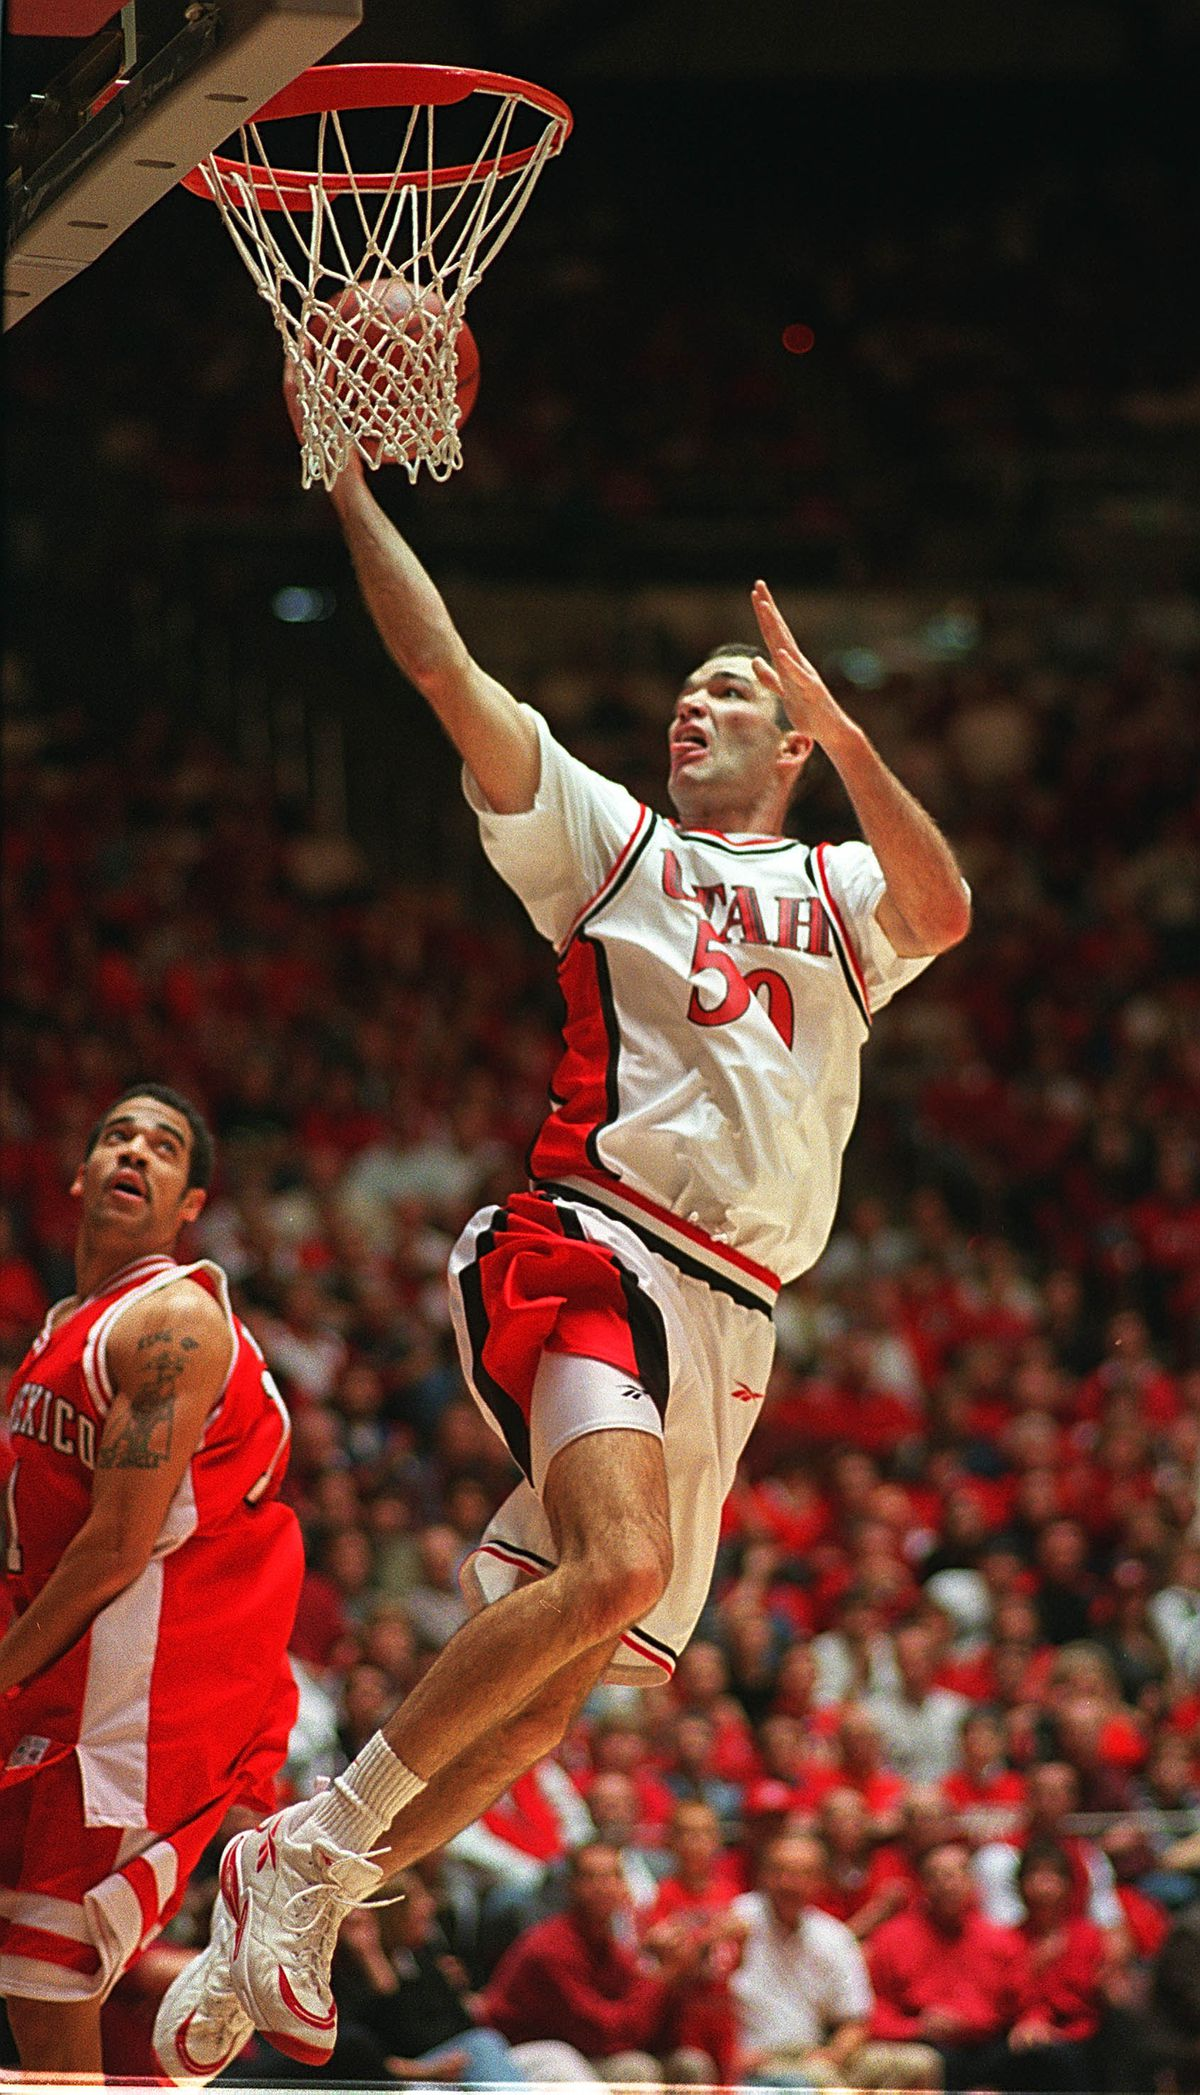 Alex Jensen scores on New Mexico's Kevin Henry in the Huntsman Center.